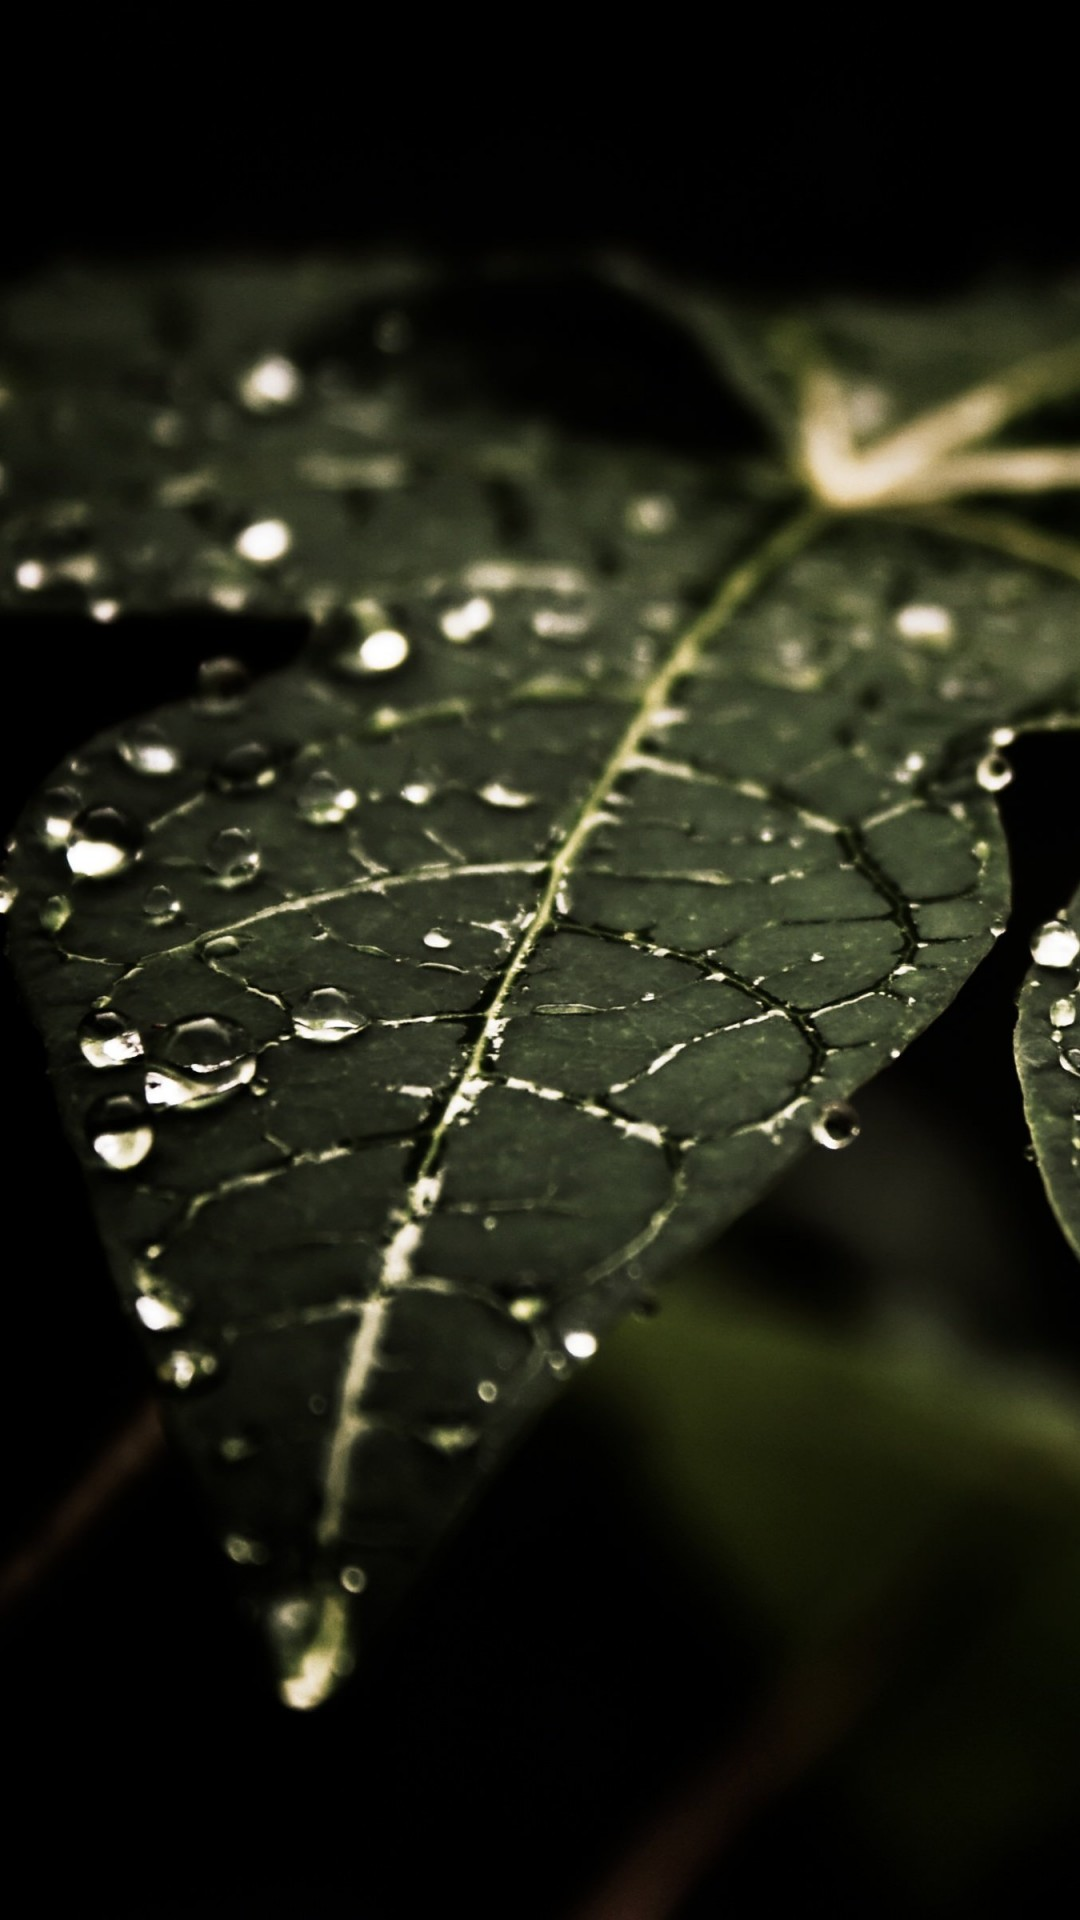 Droplets On Leaves Wallpaper for SONY Xperia Z3